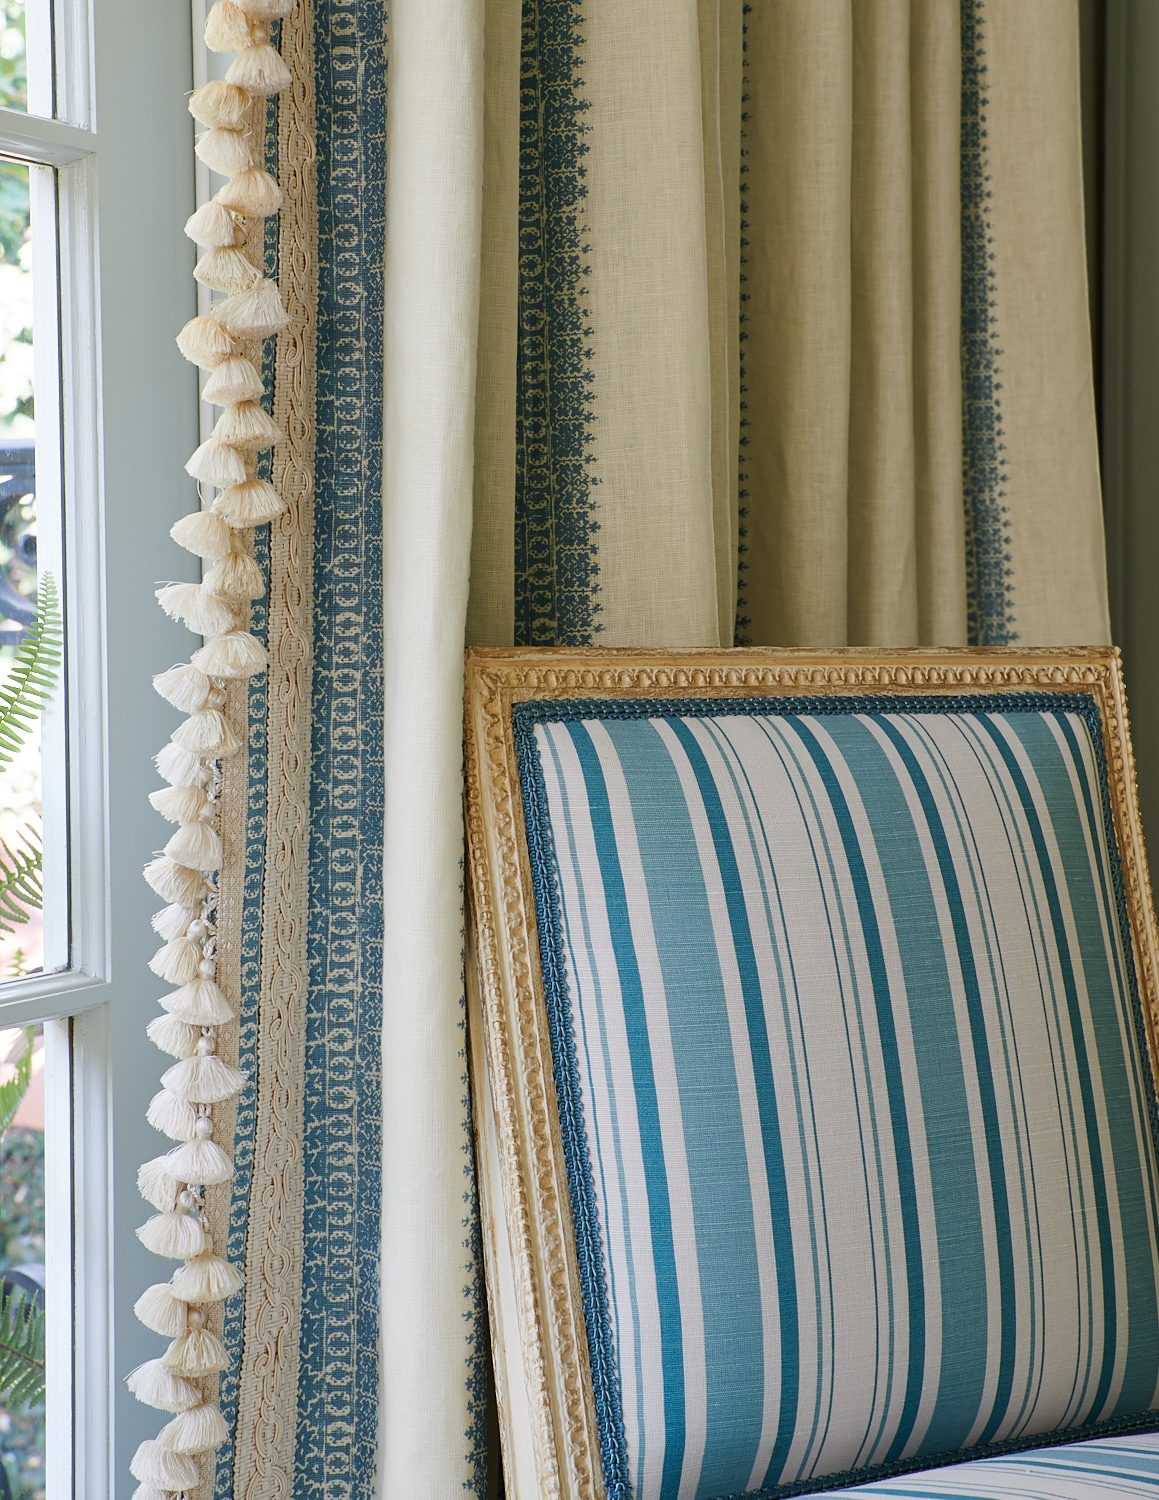 Striped Chair and Drapery with Trim